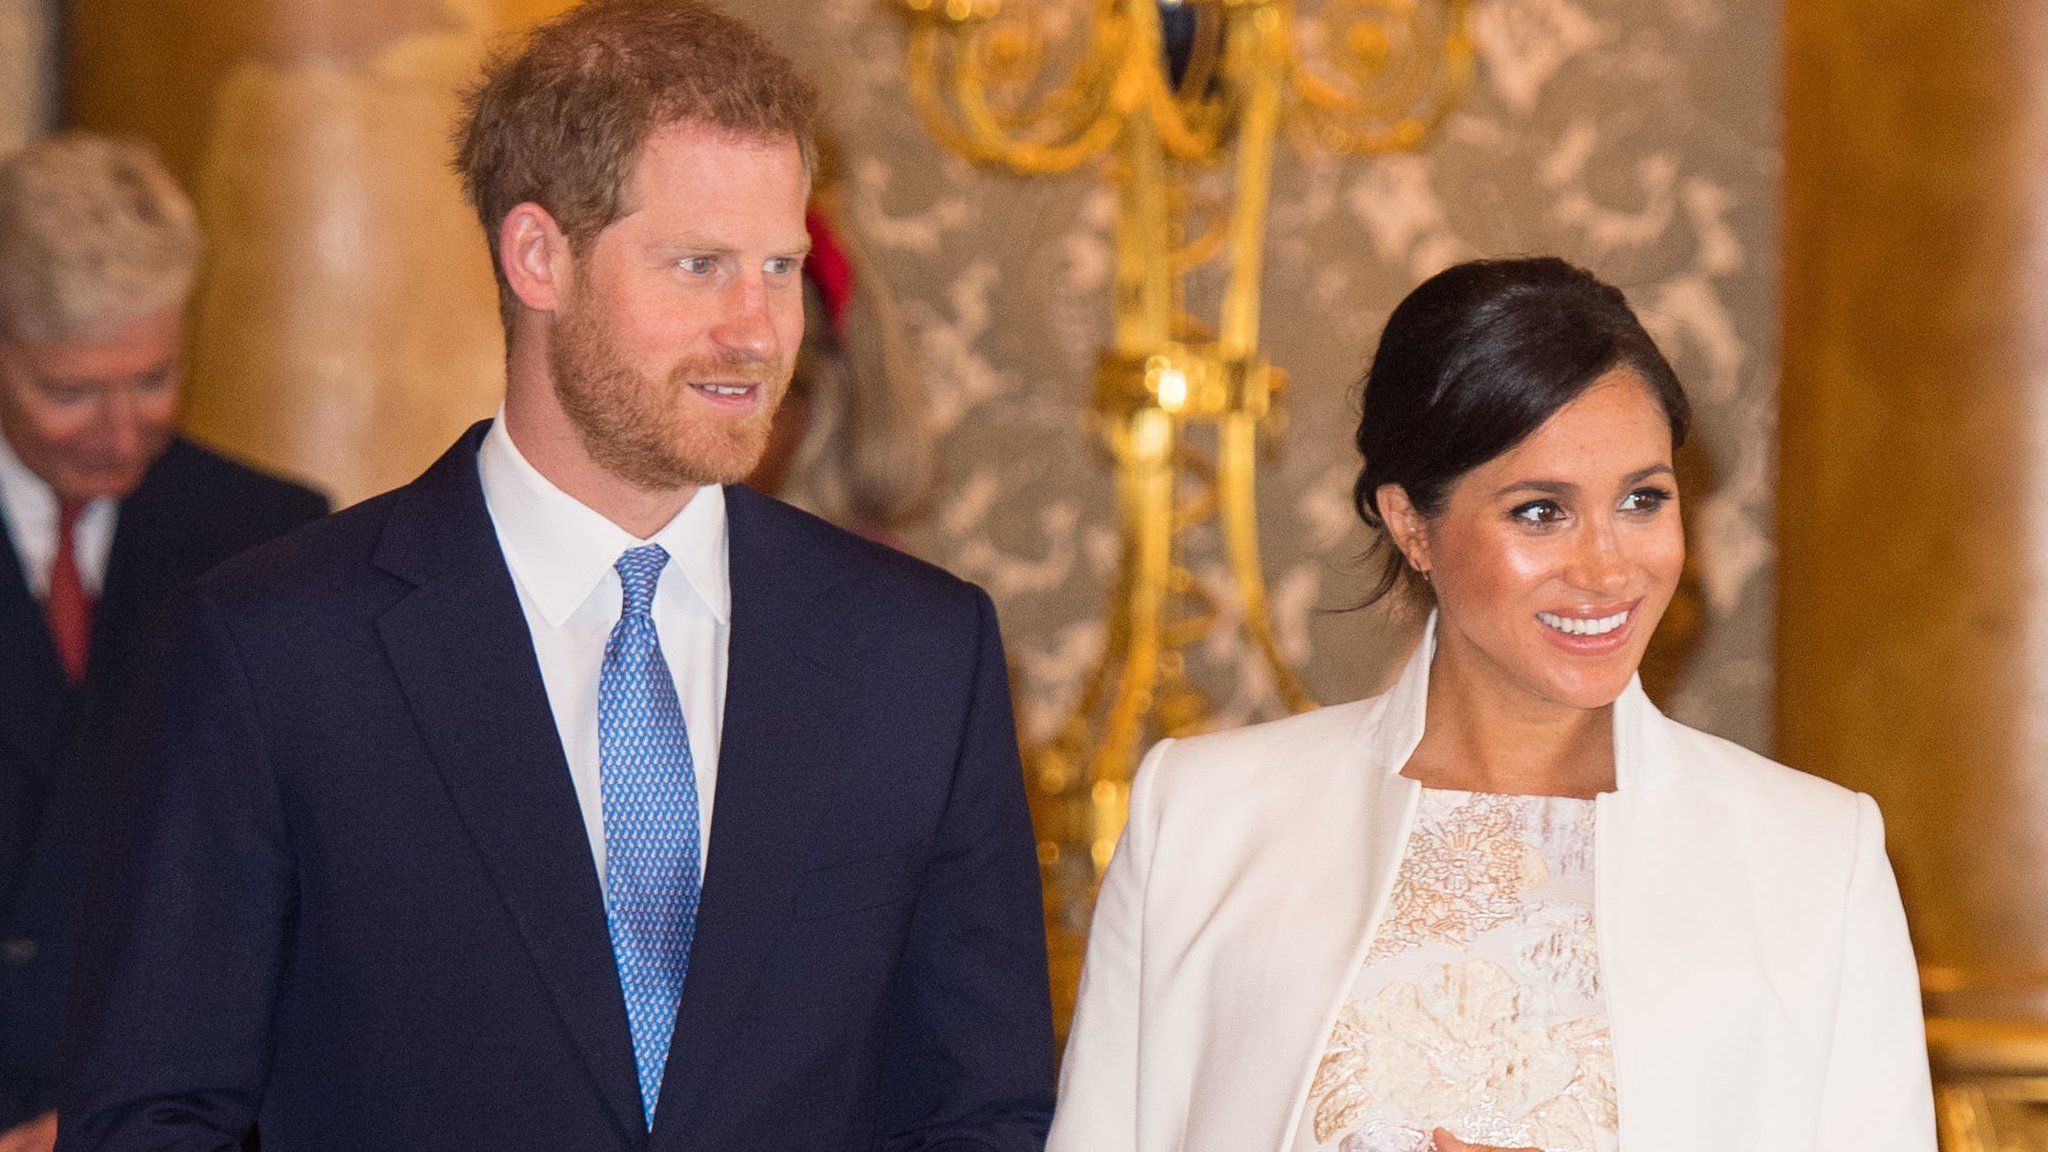 Archie Harrison: The meaning behind the royal baby's name